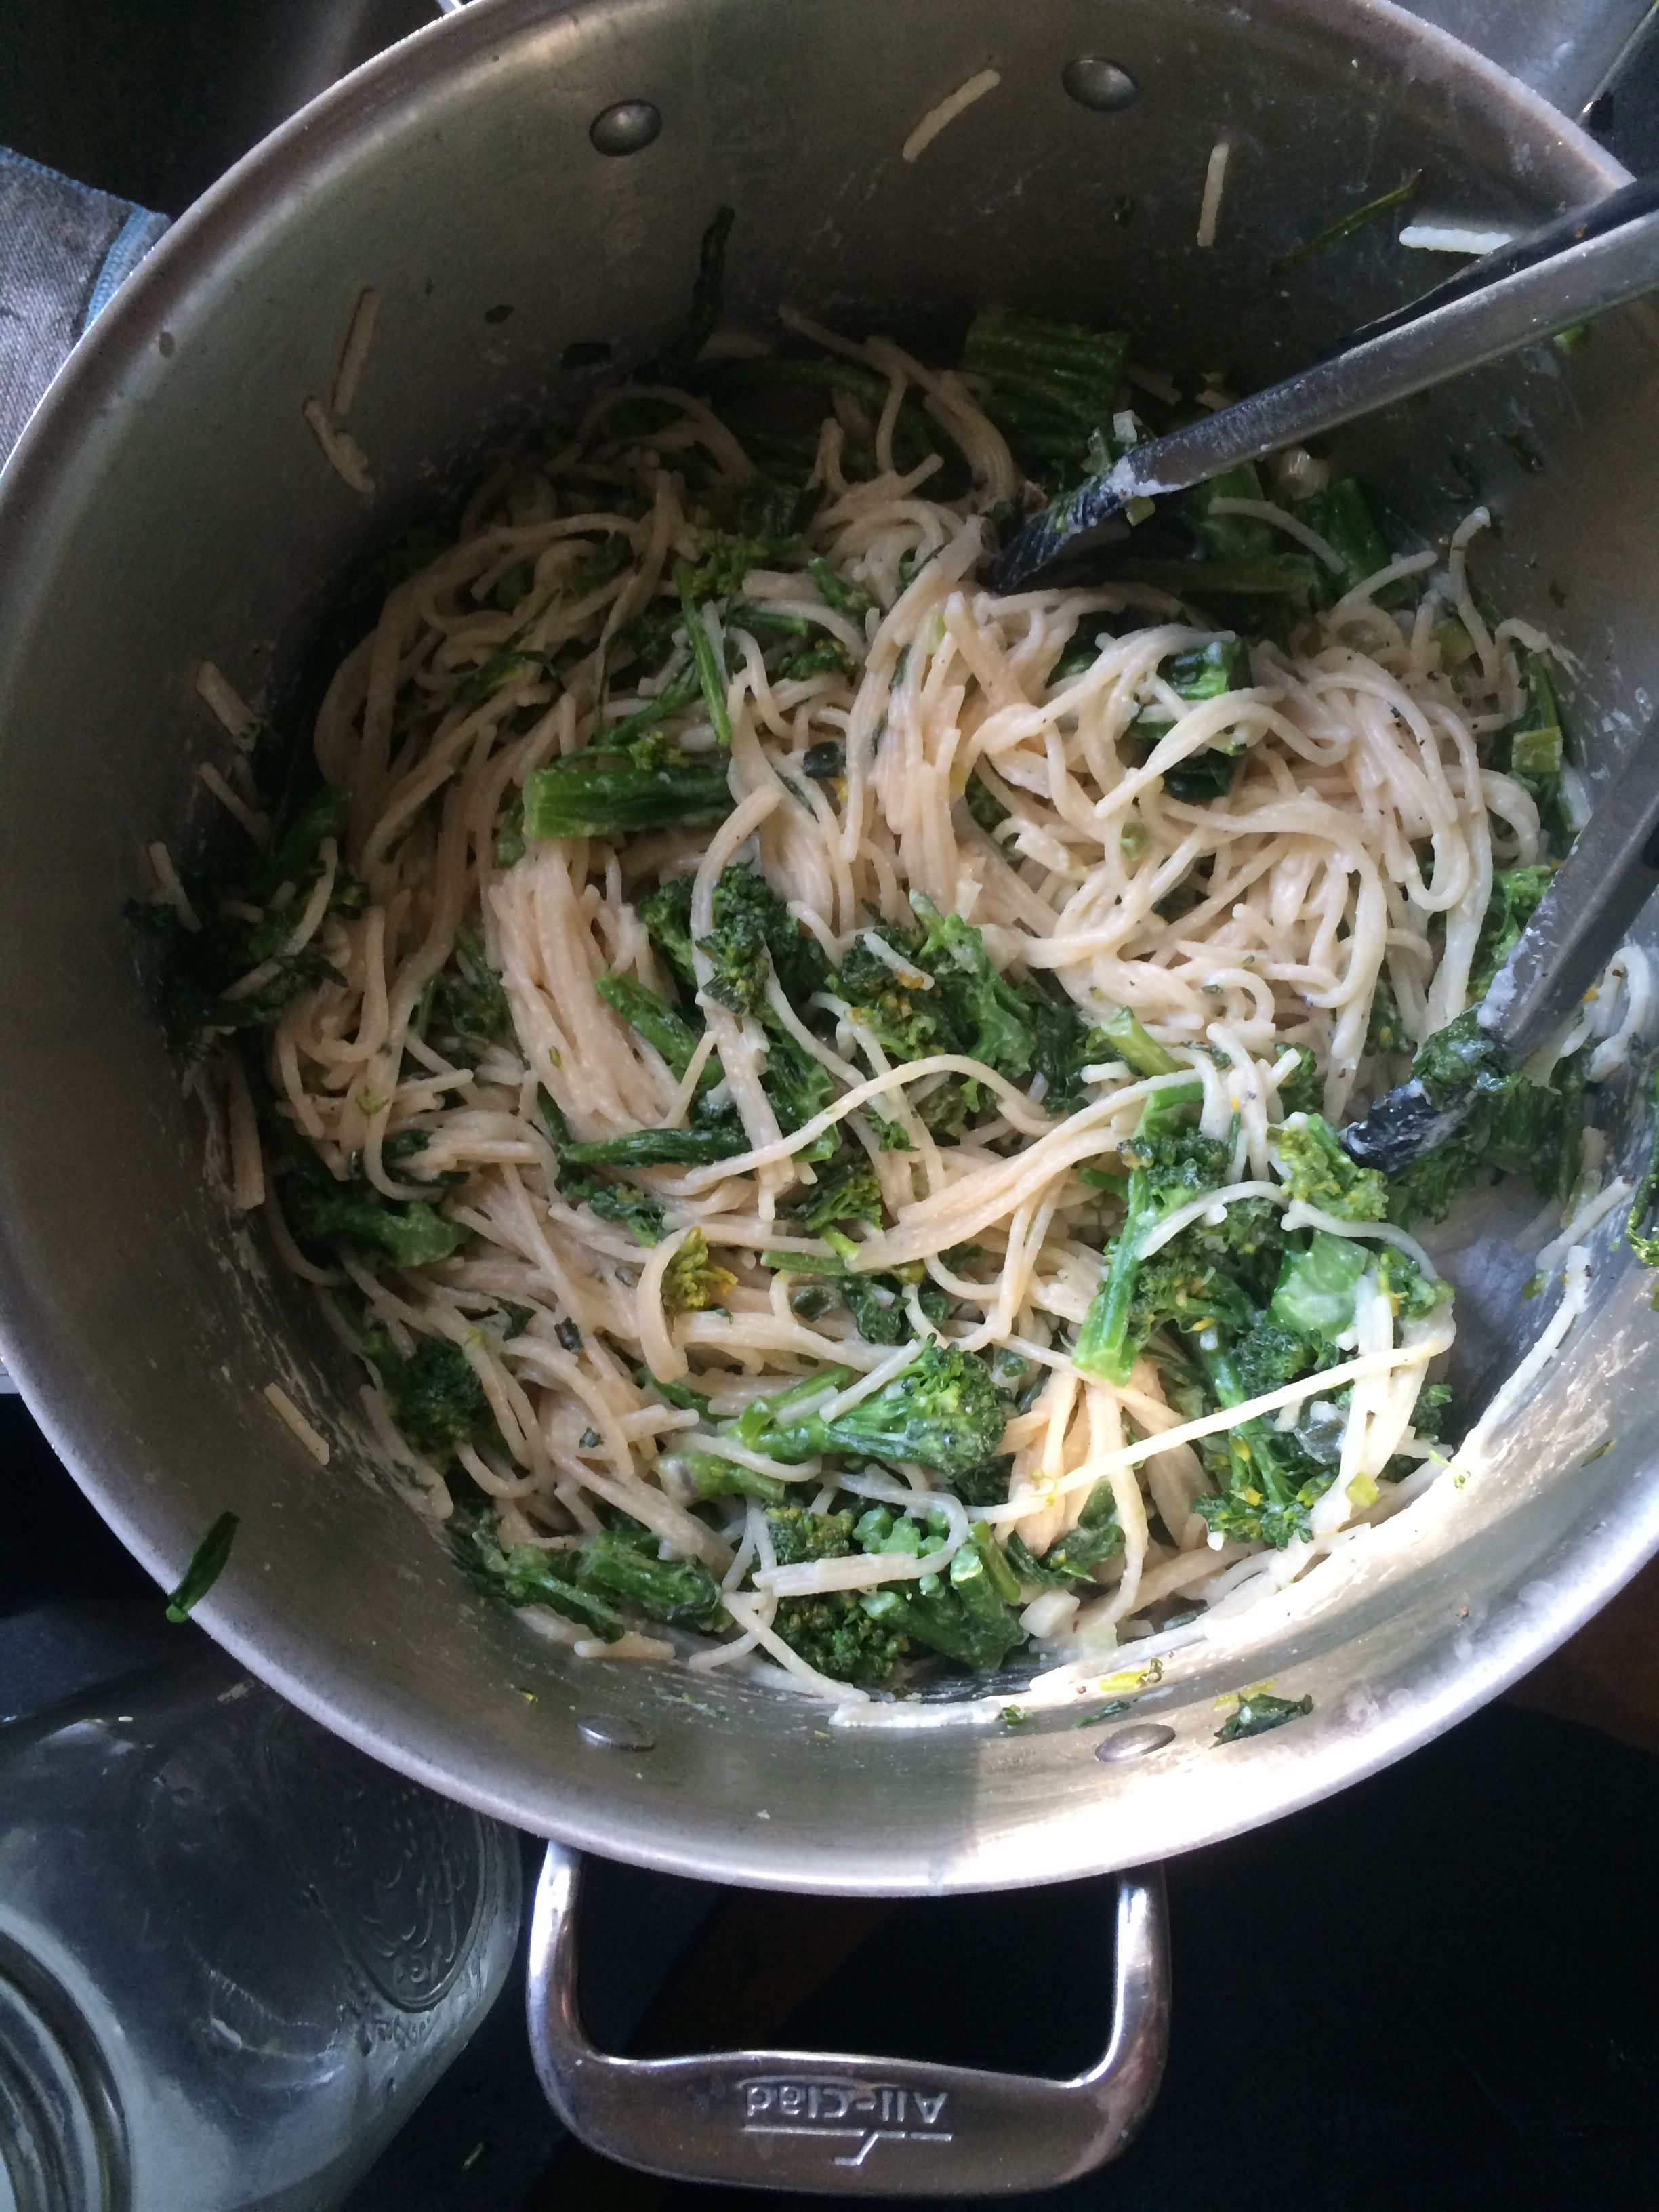 Spaghetti with Ricotta and Double Broccoli. Ta da!